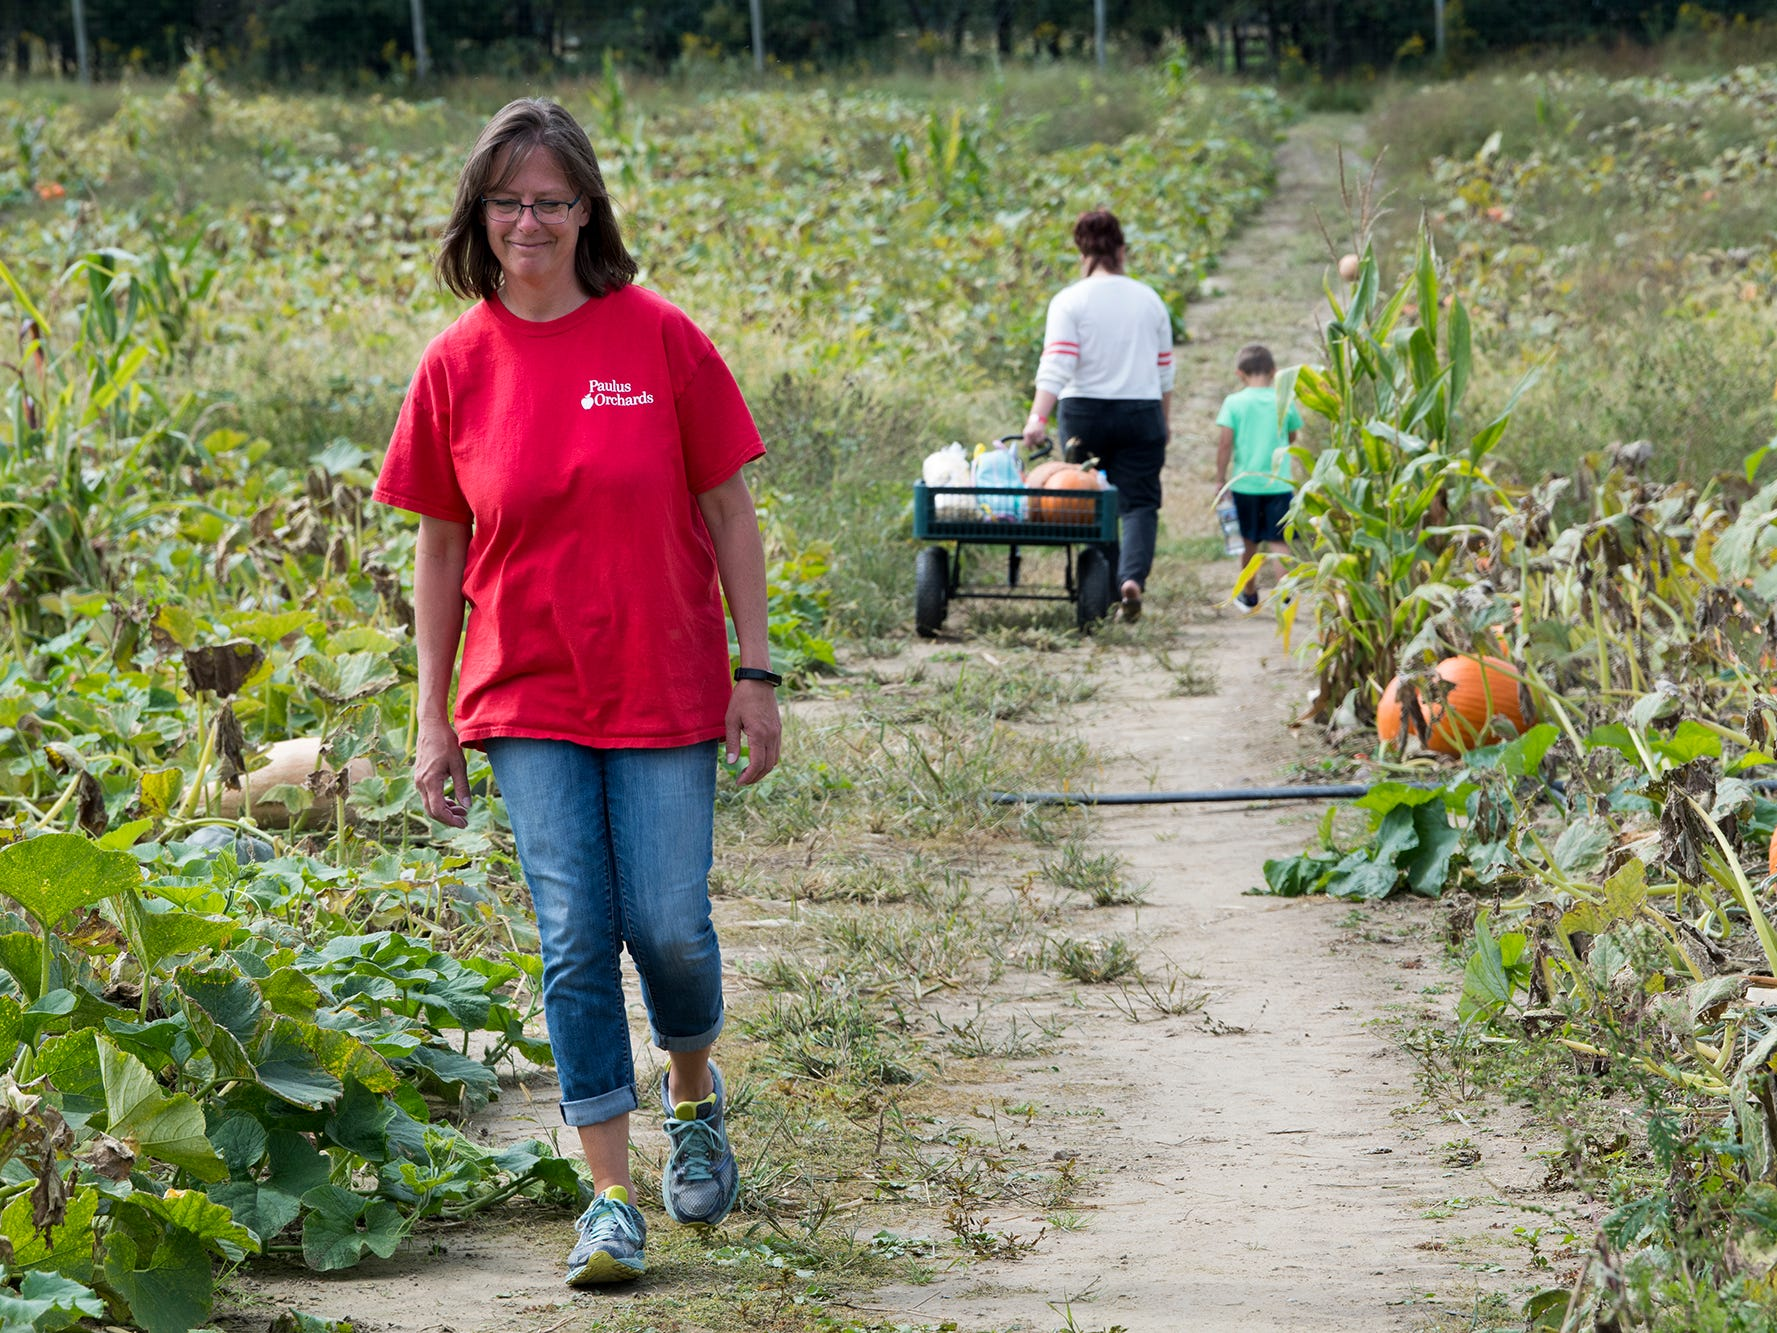 Karen Paulus, who owns Paulus Orchards with her husband, Dan, walks through the u-pick pumpkin field in Monaghan Township.